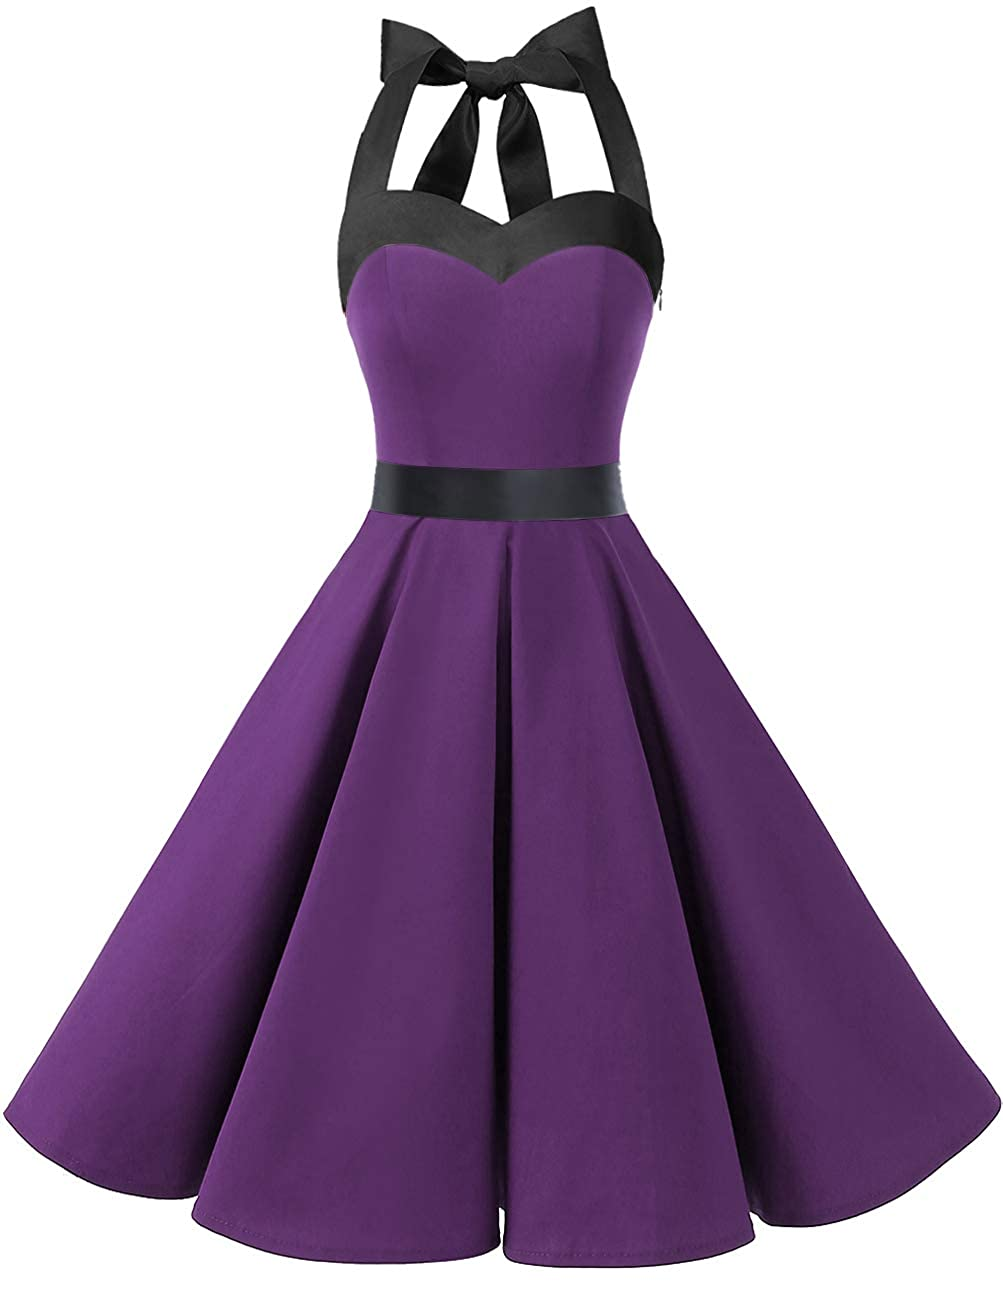 TALLA XXL. Dresstells® Halter 50s Rockabilly Polka Dots Audrey Dress Retro Cocktail Dress Purple Black XXL